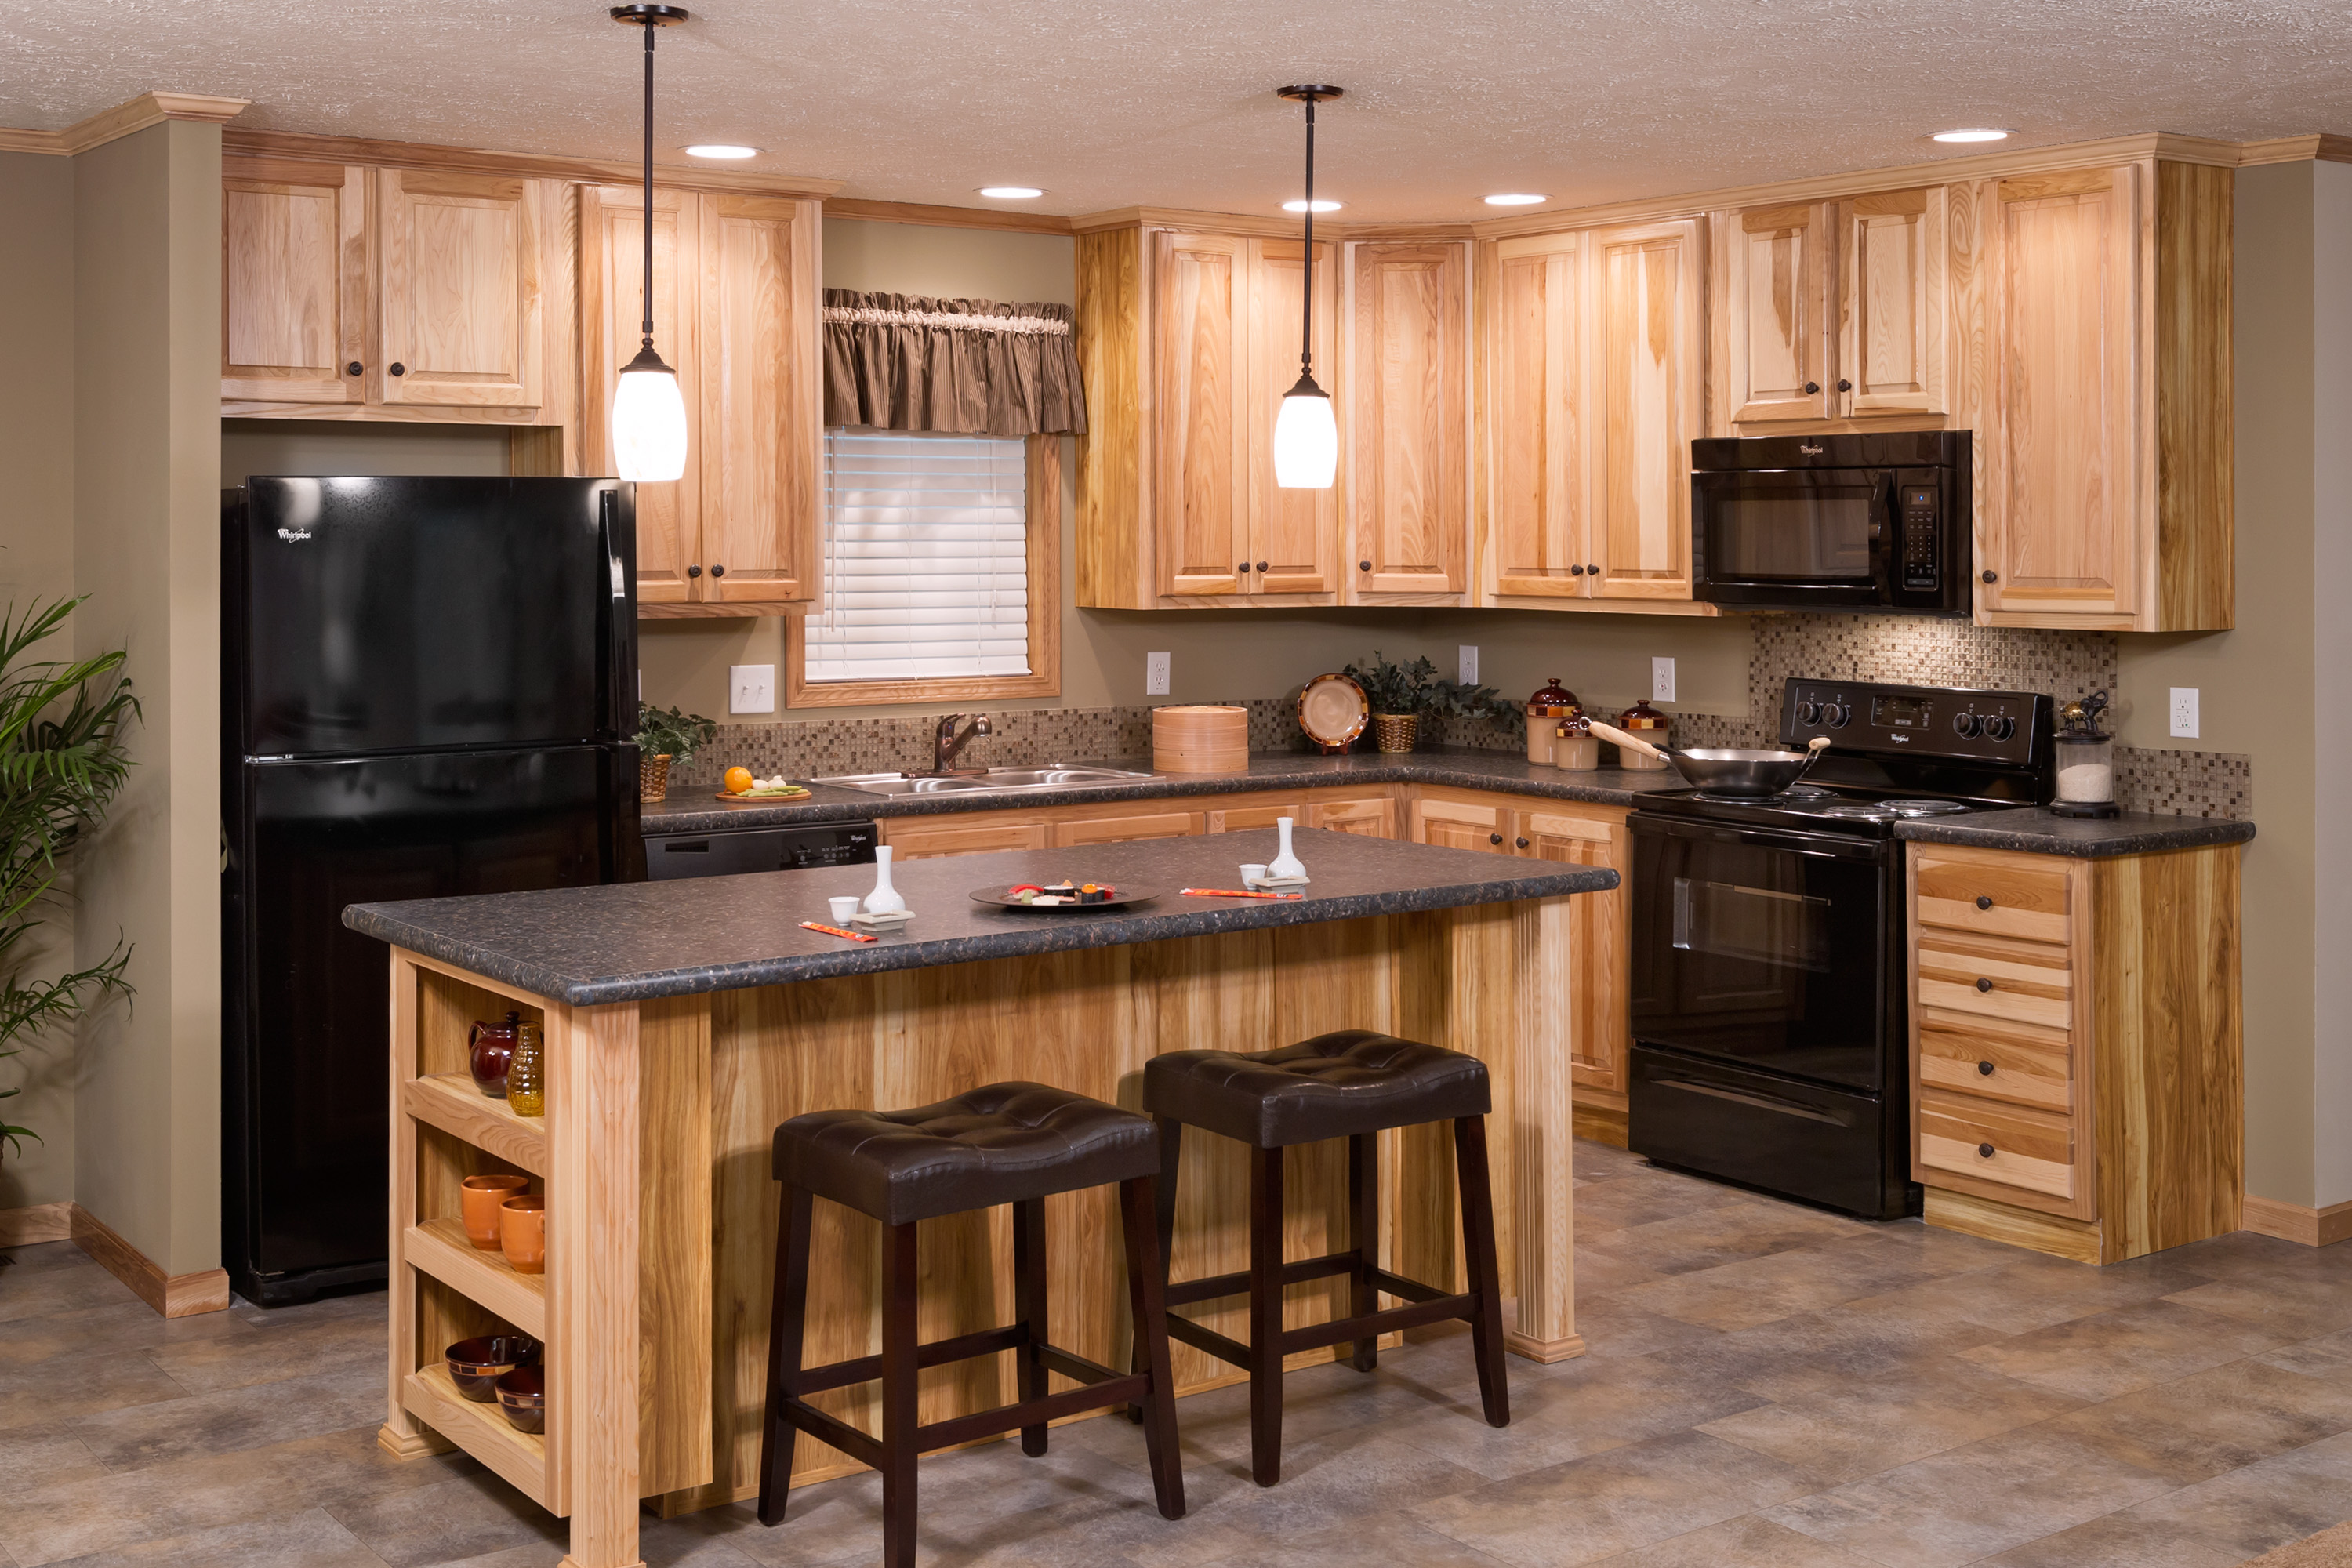 mobile home kitchen cabinets for sale pendant light fixtures redman model with hickory brooks village